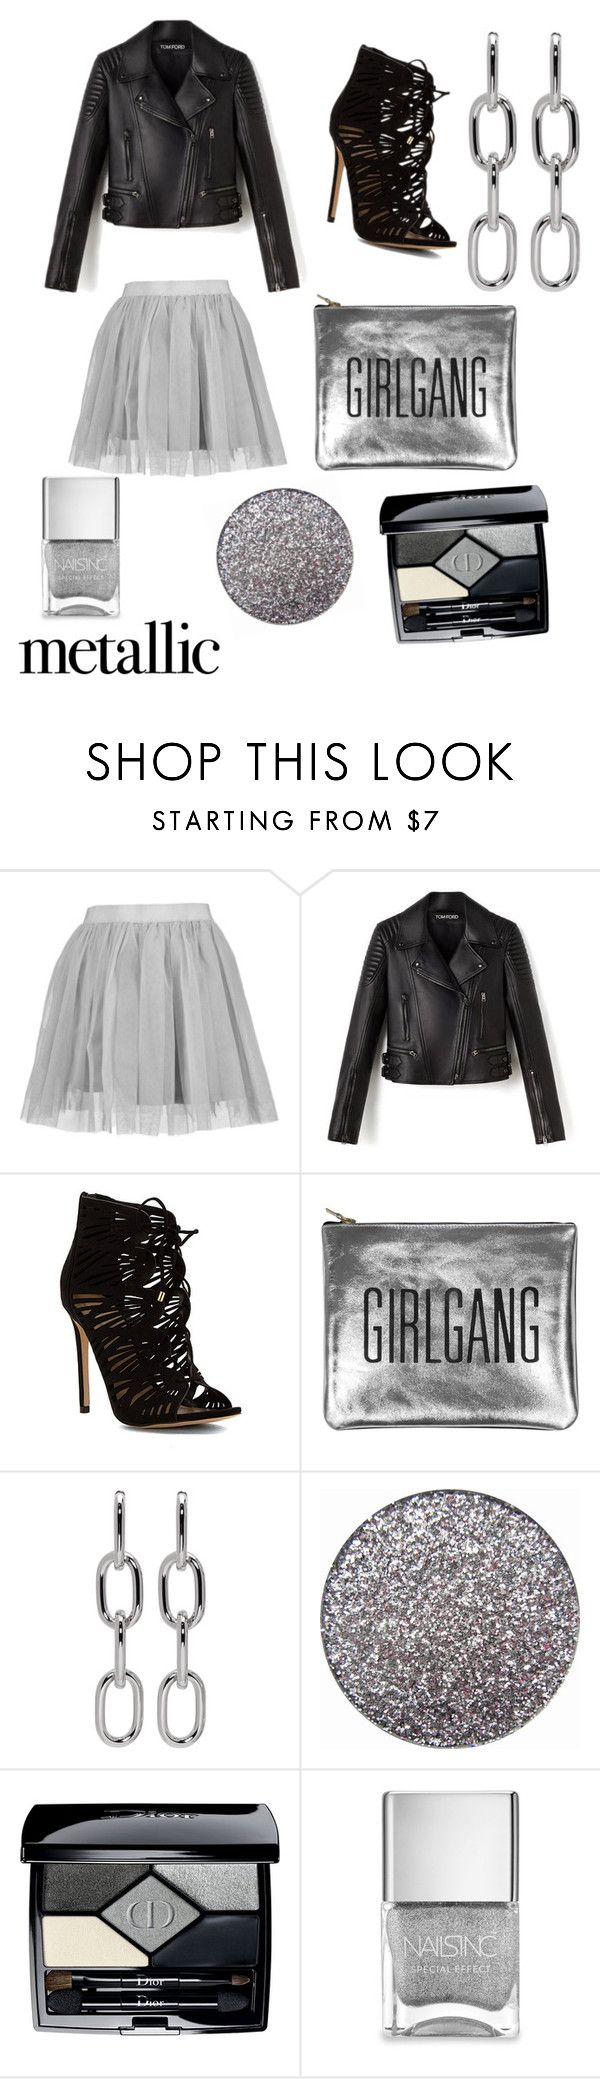 """""""shine bright"""" by majamacuzic ❤ liked on Polyvore featuring beauty, Boohoo, ALDO, Sarah Baily, Alexander Wang, Christian Dior and Nails Inc."""